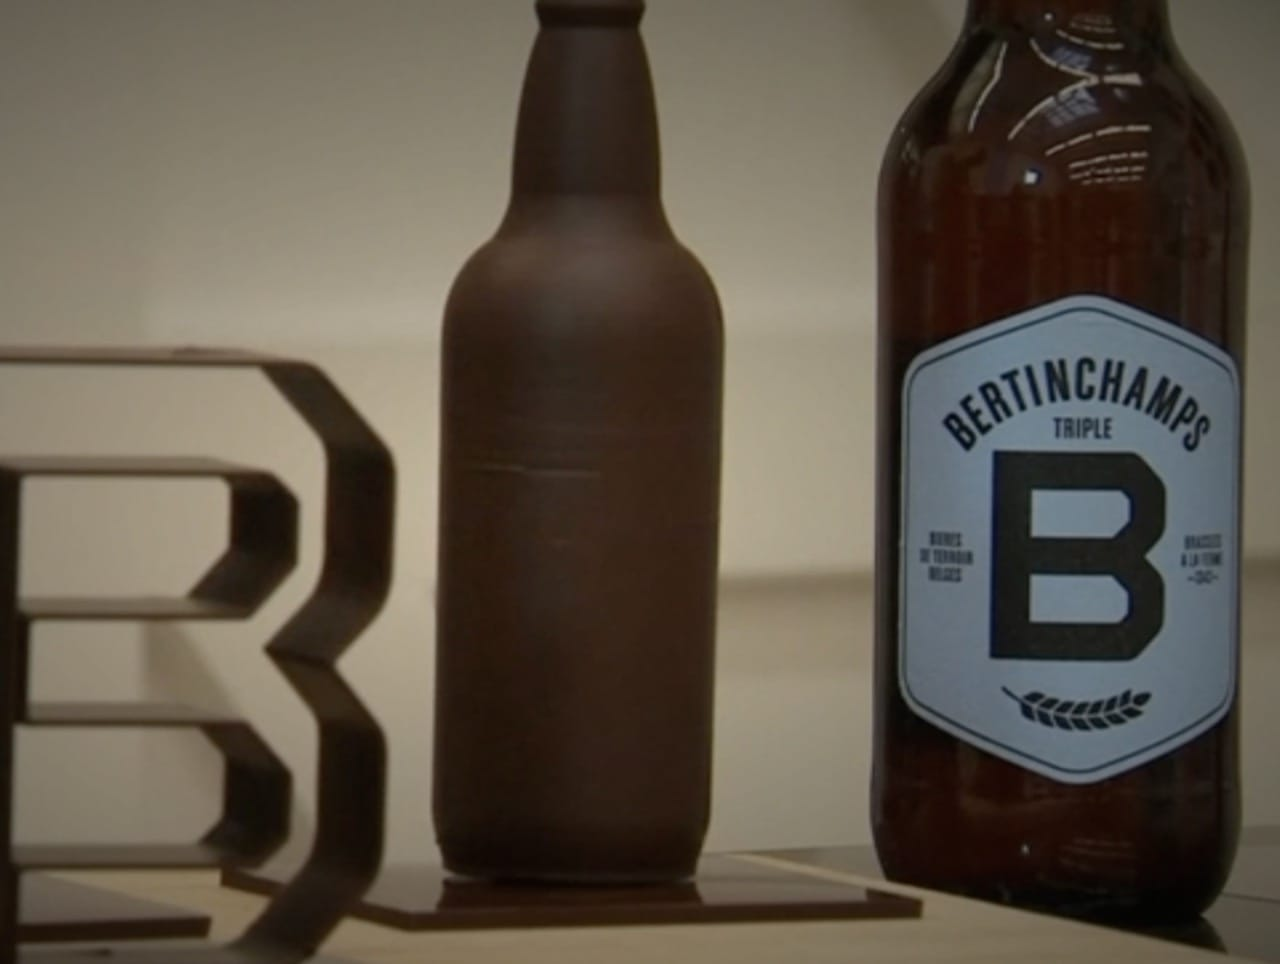 A life-size 3D printed chocolate beer bottle